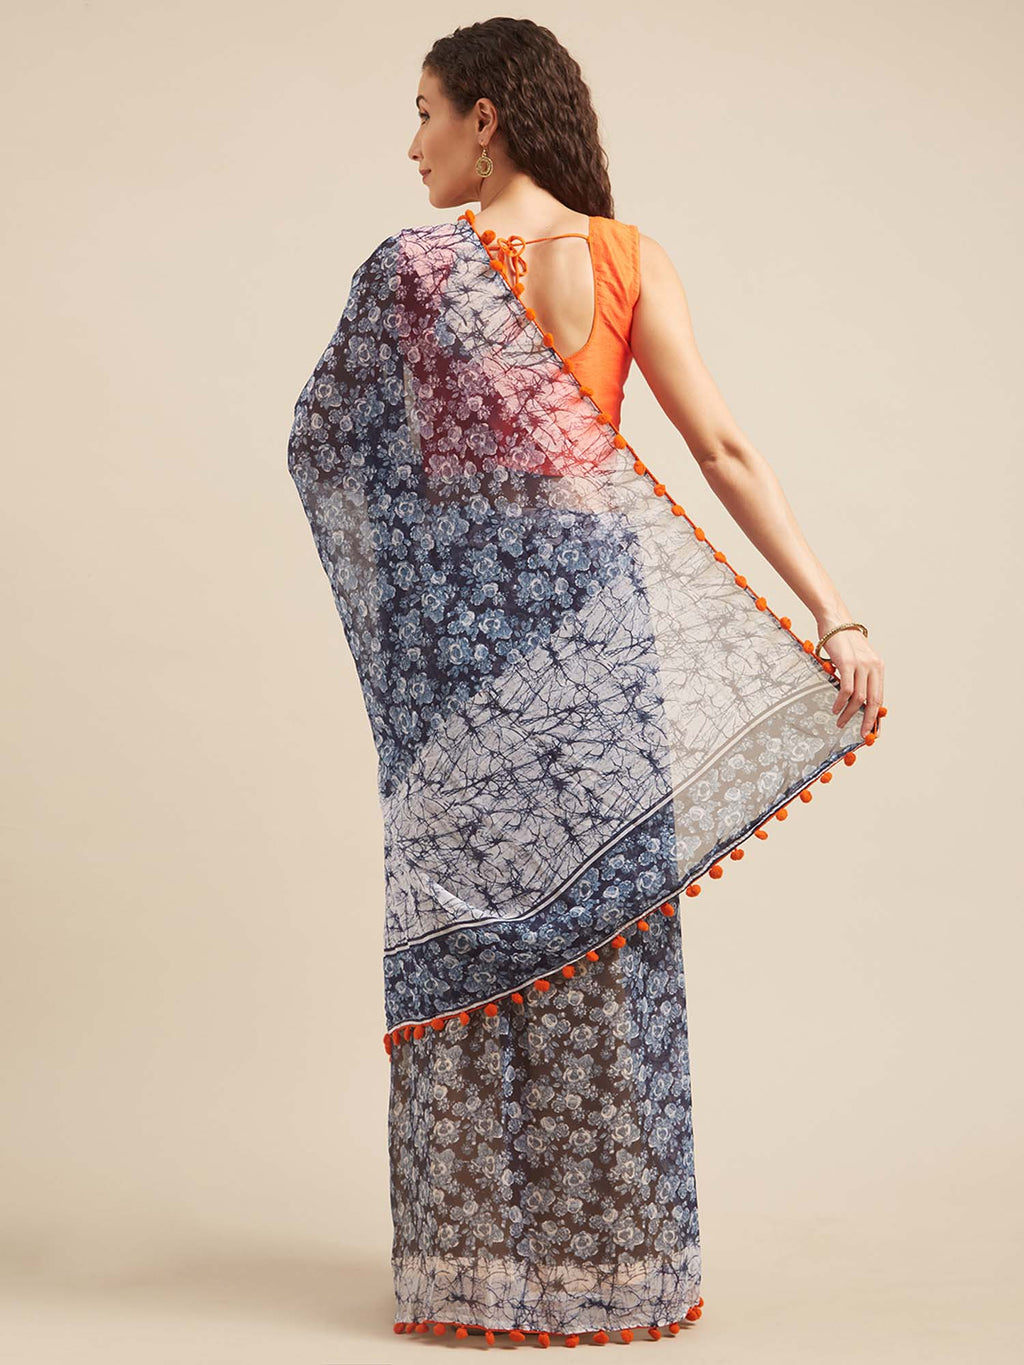 Blue and White Poly Georgette Batik Print Saree With Pom Pom Lace - Riviera Closet